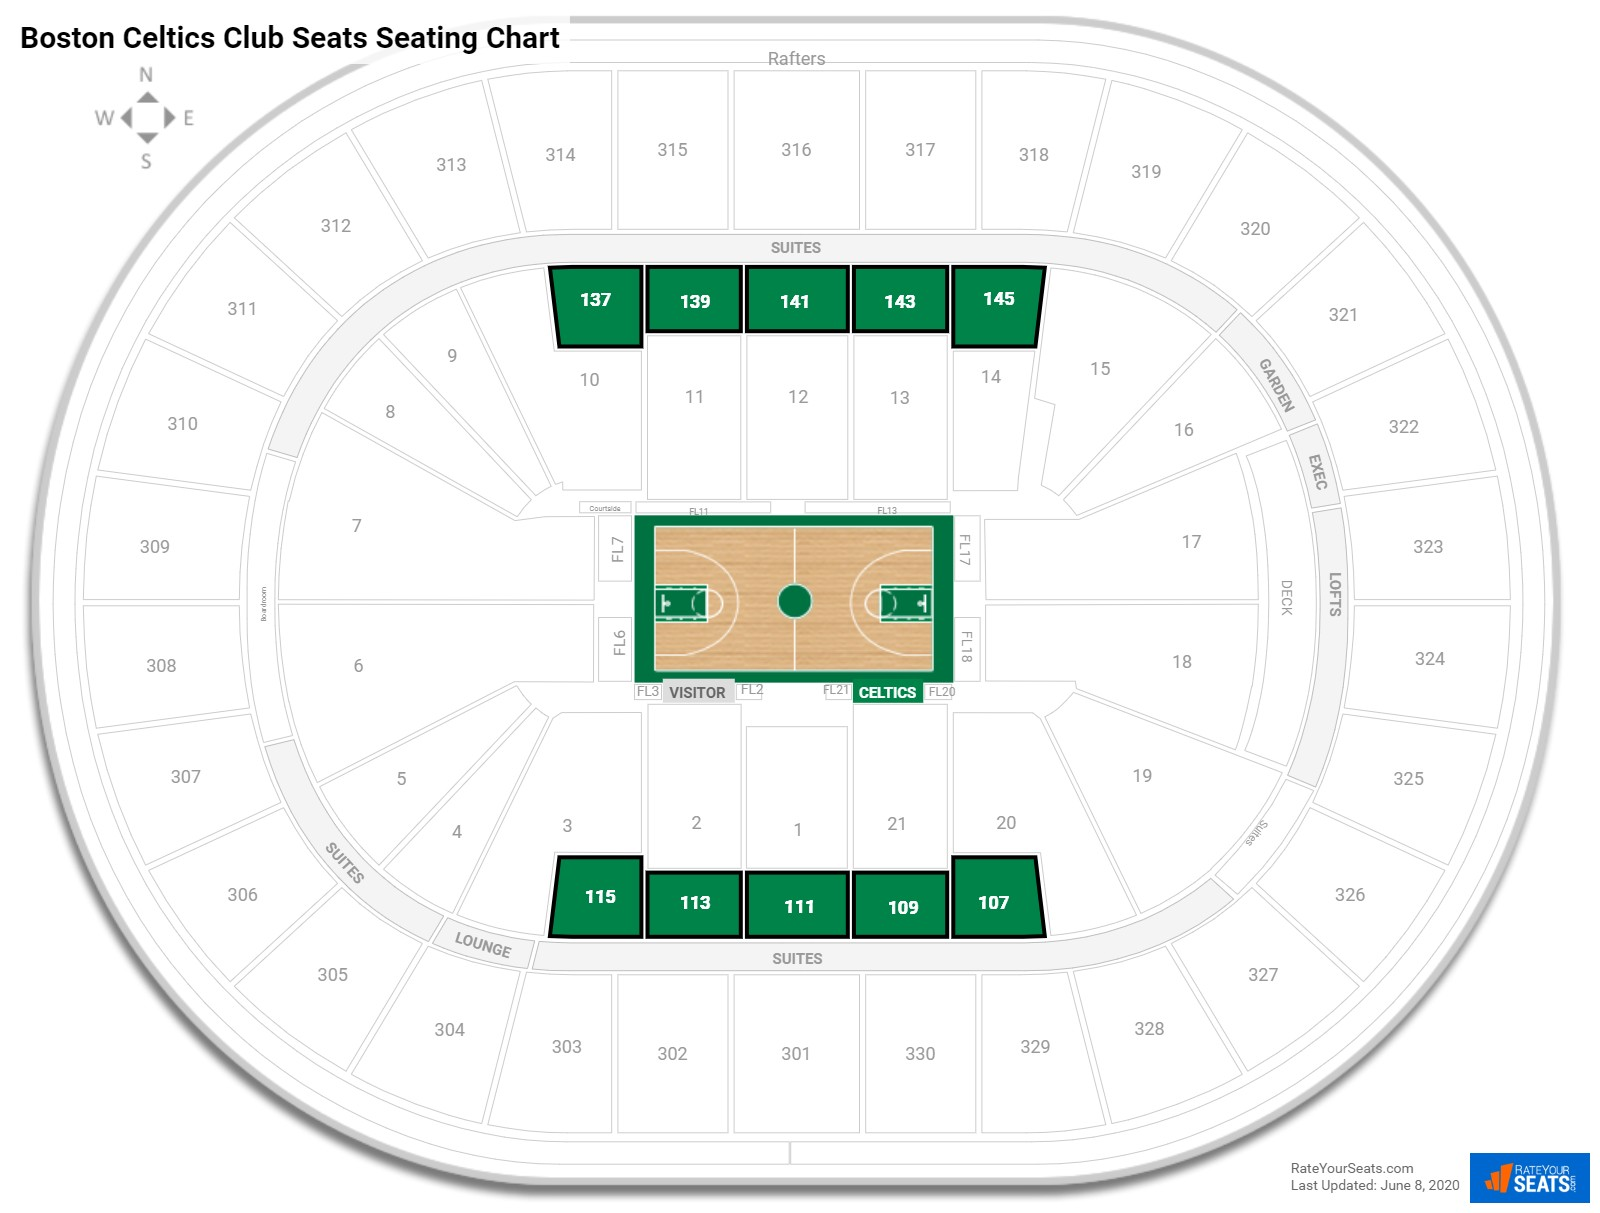 Club And Premium Seating At Td Garden Rateyourseats Com